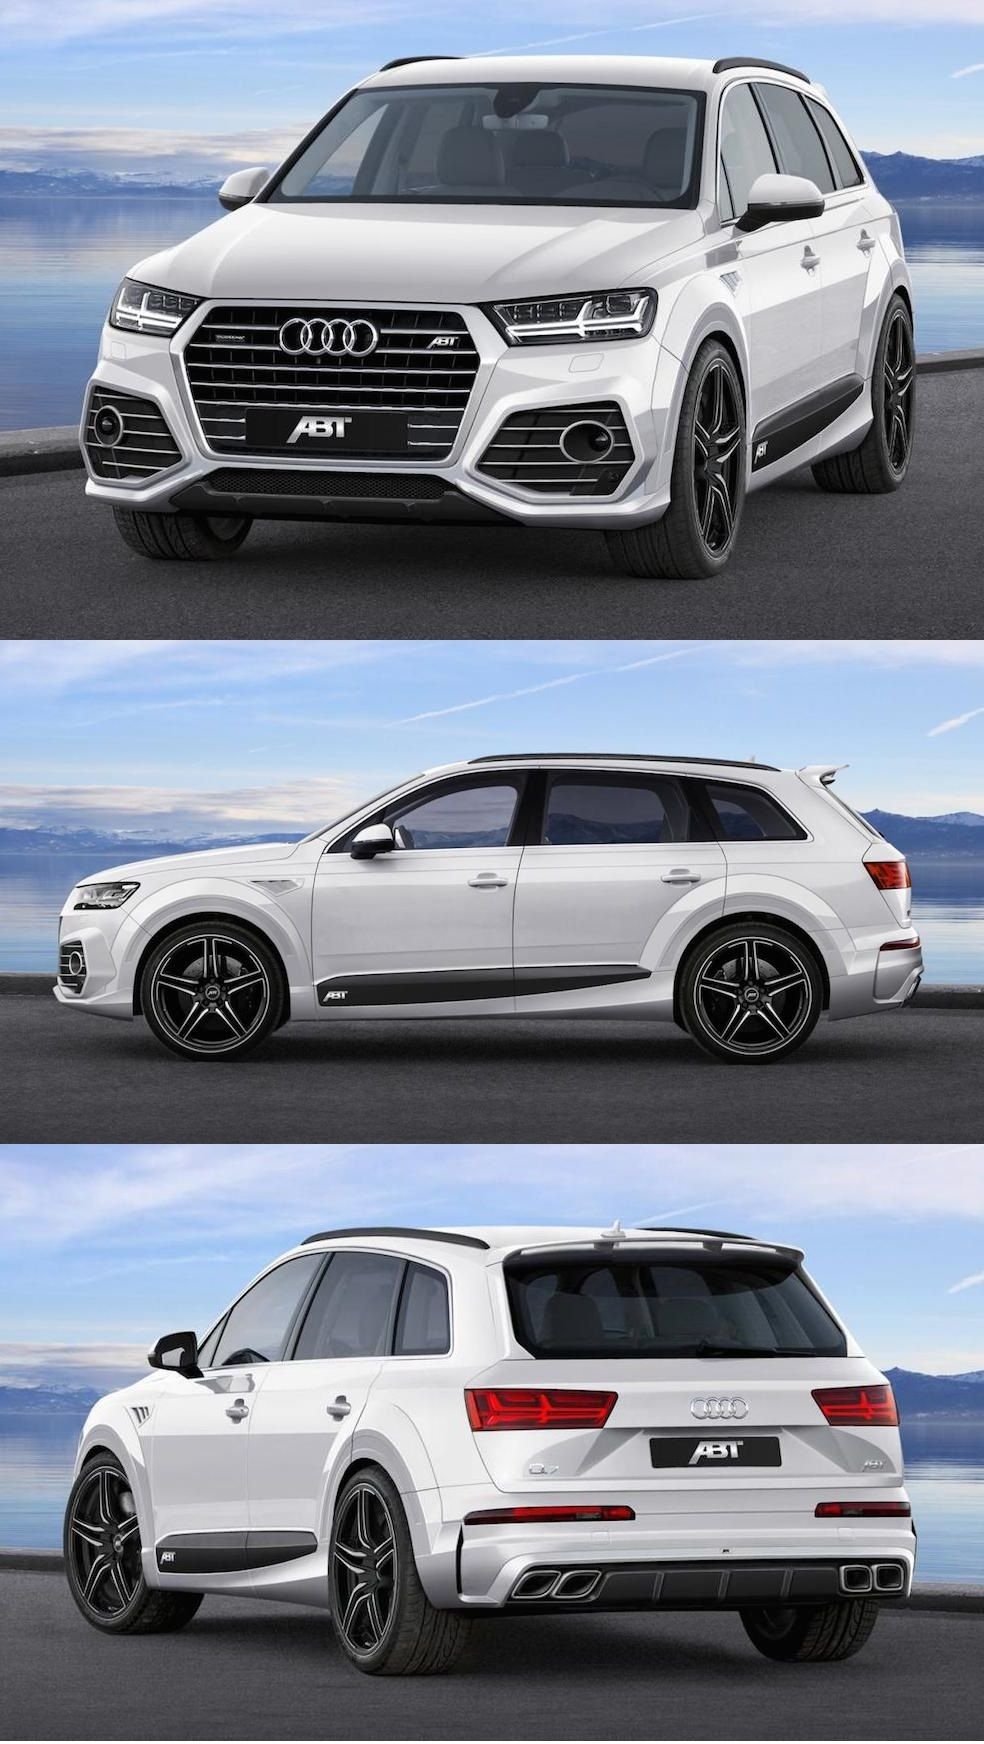 Audi Q7 U2022 Support TuningCult.com For All Tuning Lovers